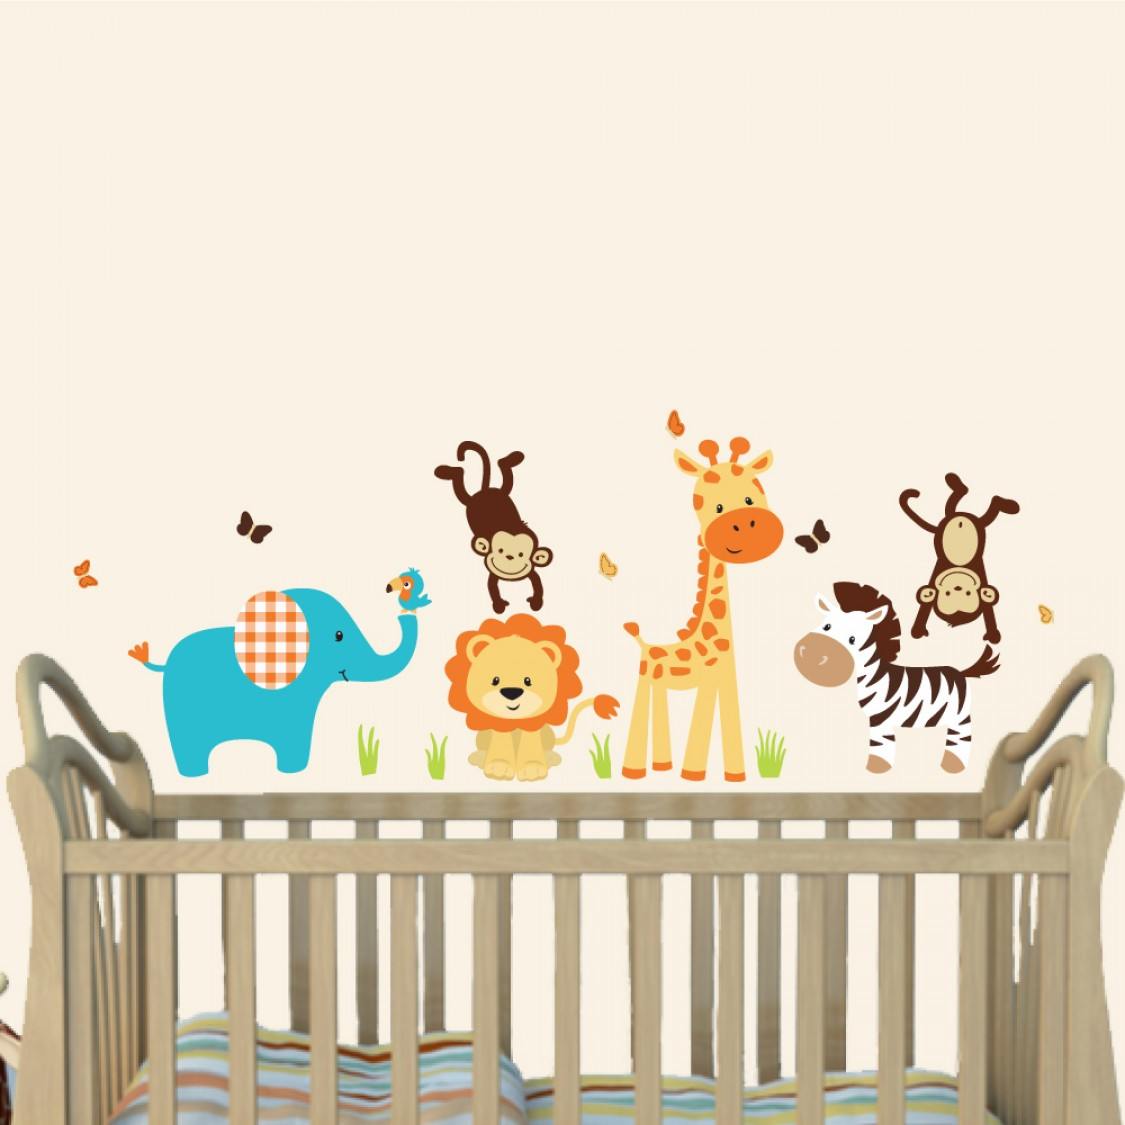 Cheerful Jungle Theme Wall Decals With Wall Sticker Giraffe For - Nursery wall decals jungle